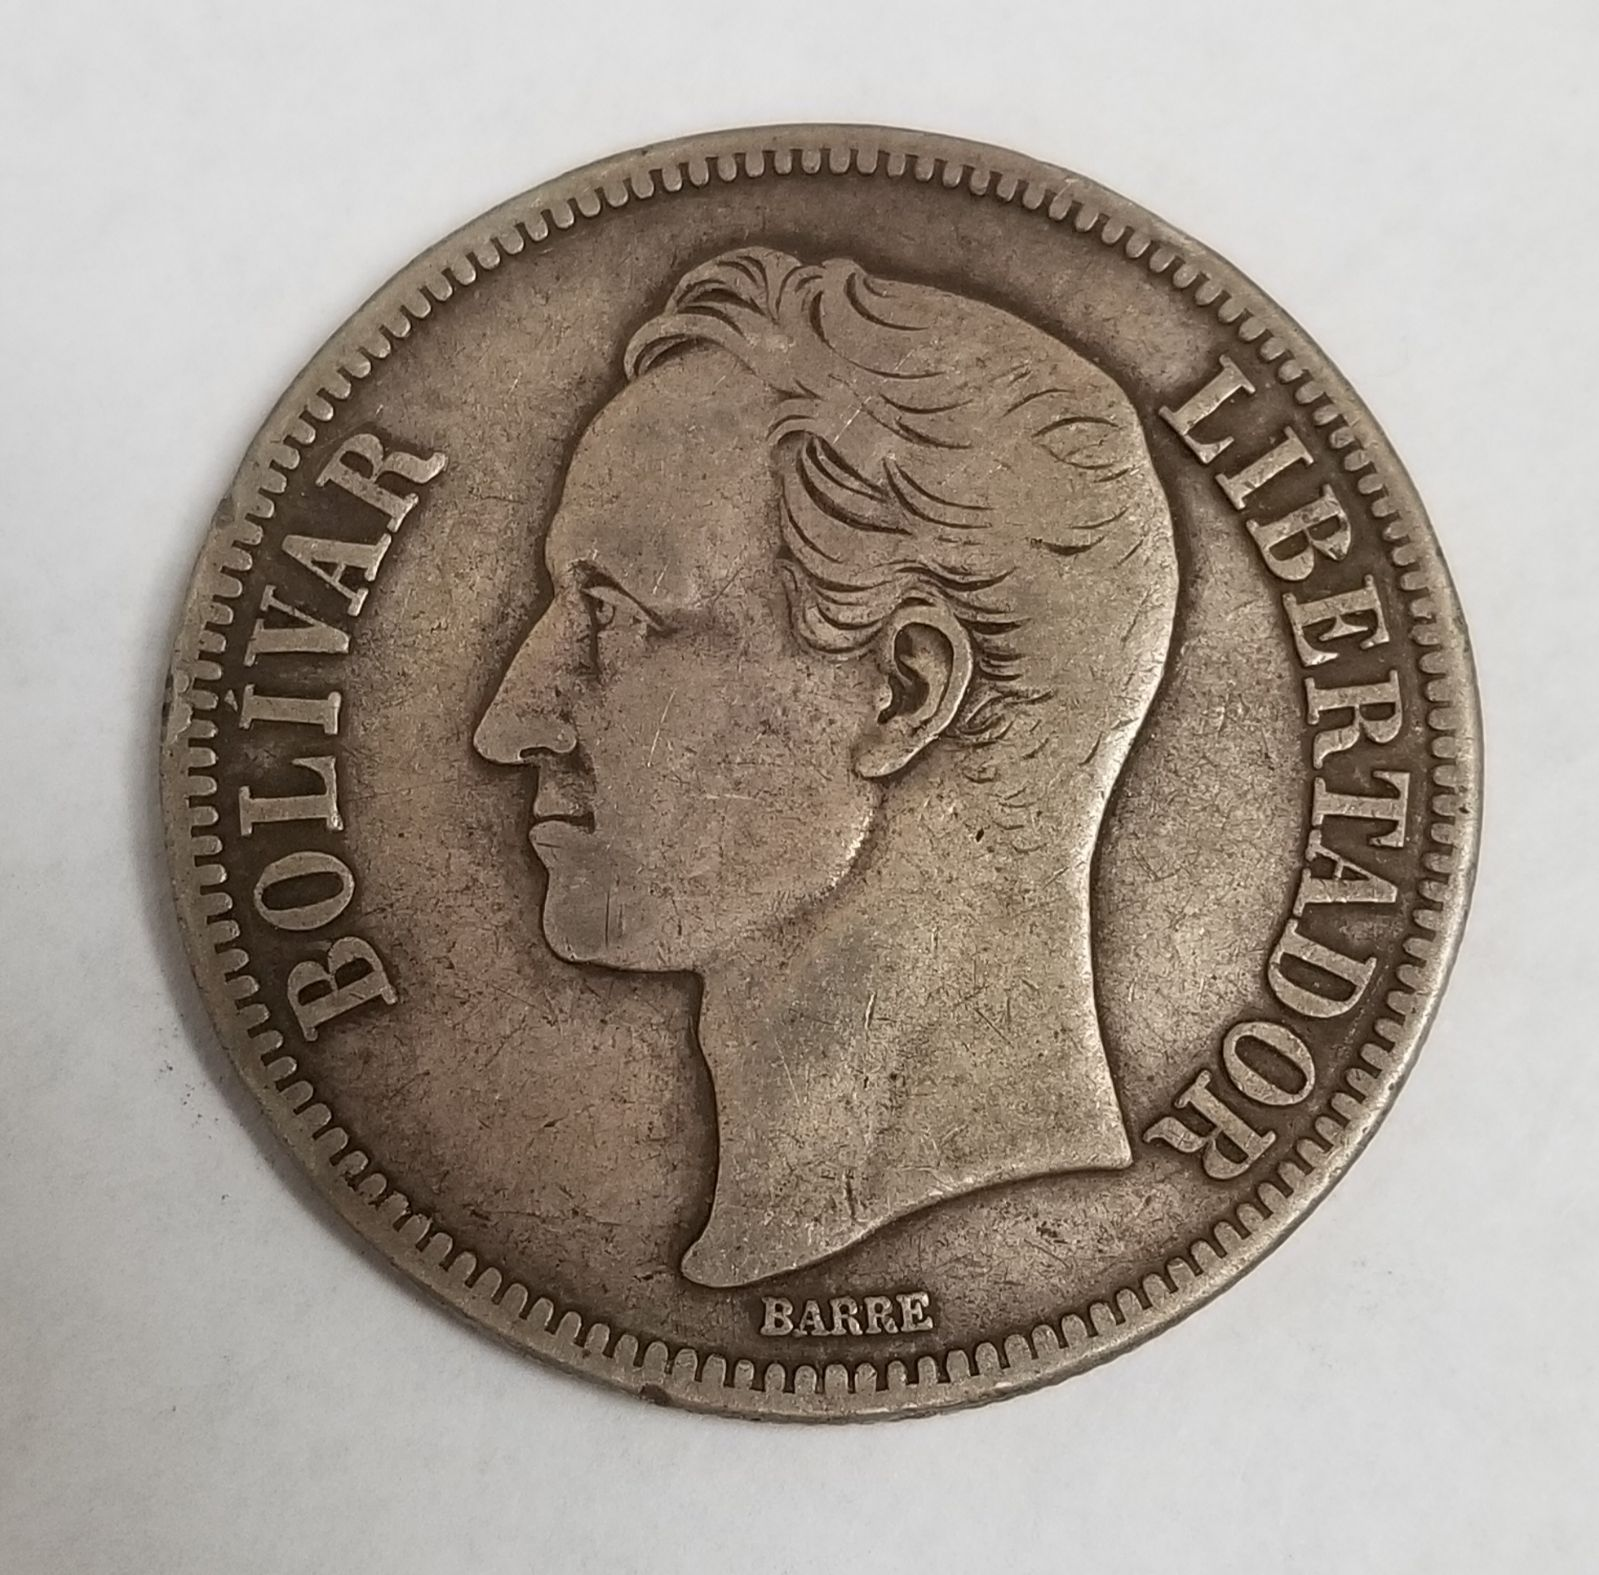 Venezuela 1935 5 Bolivares 25 Gram Silver Coin Composition 90 Silver Total Item Weight 24 6 Grams Please View All Pictures To D Silver Coins Coins Silver